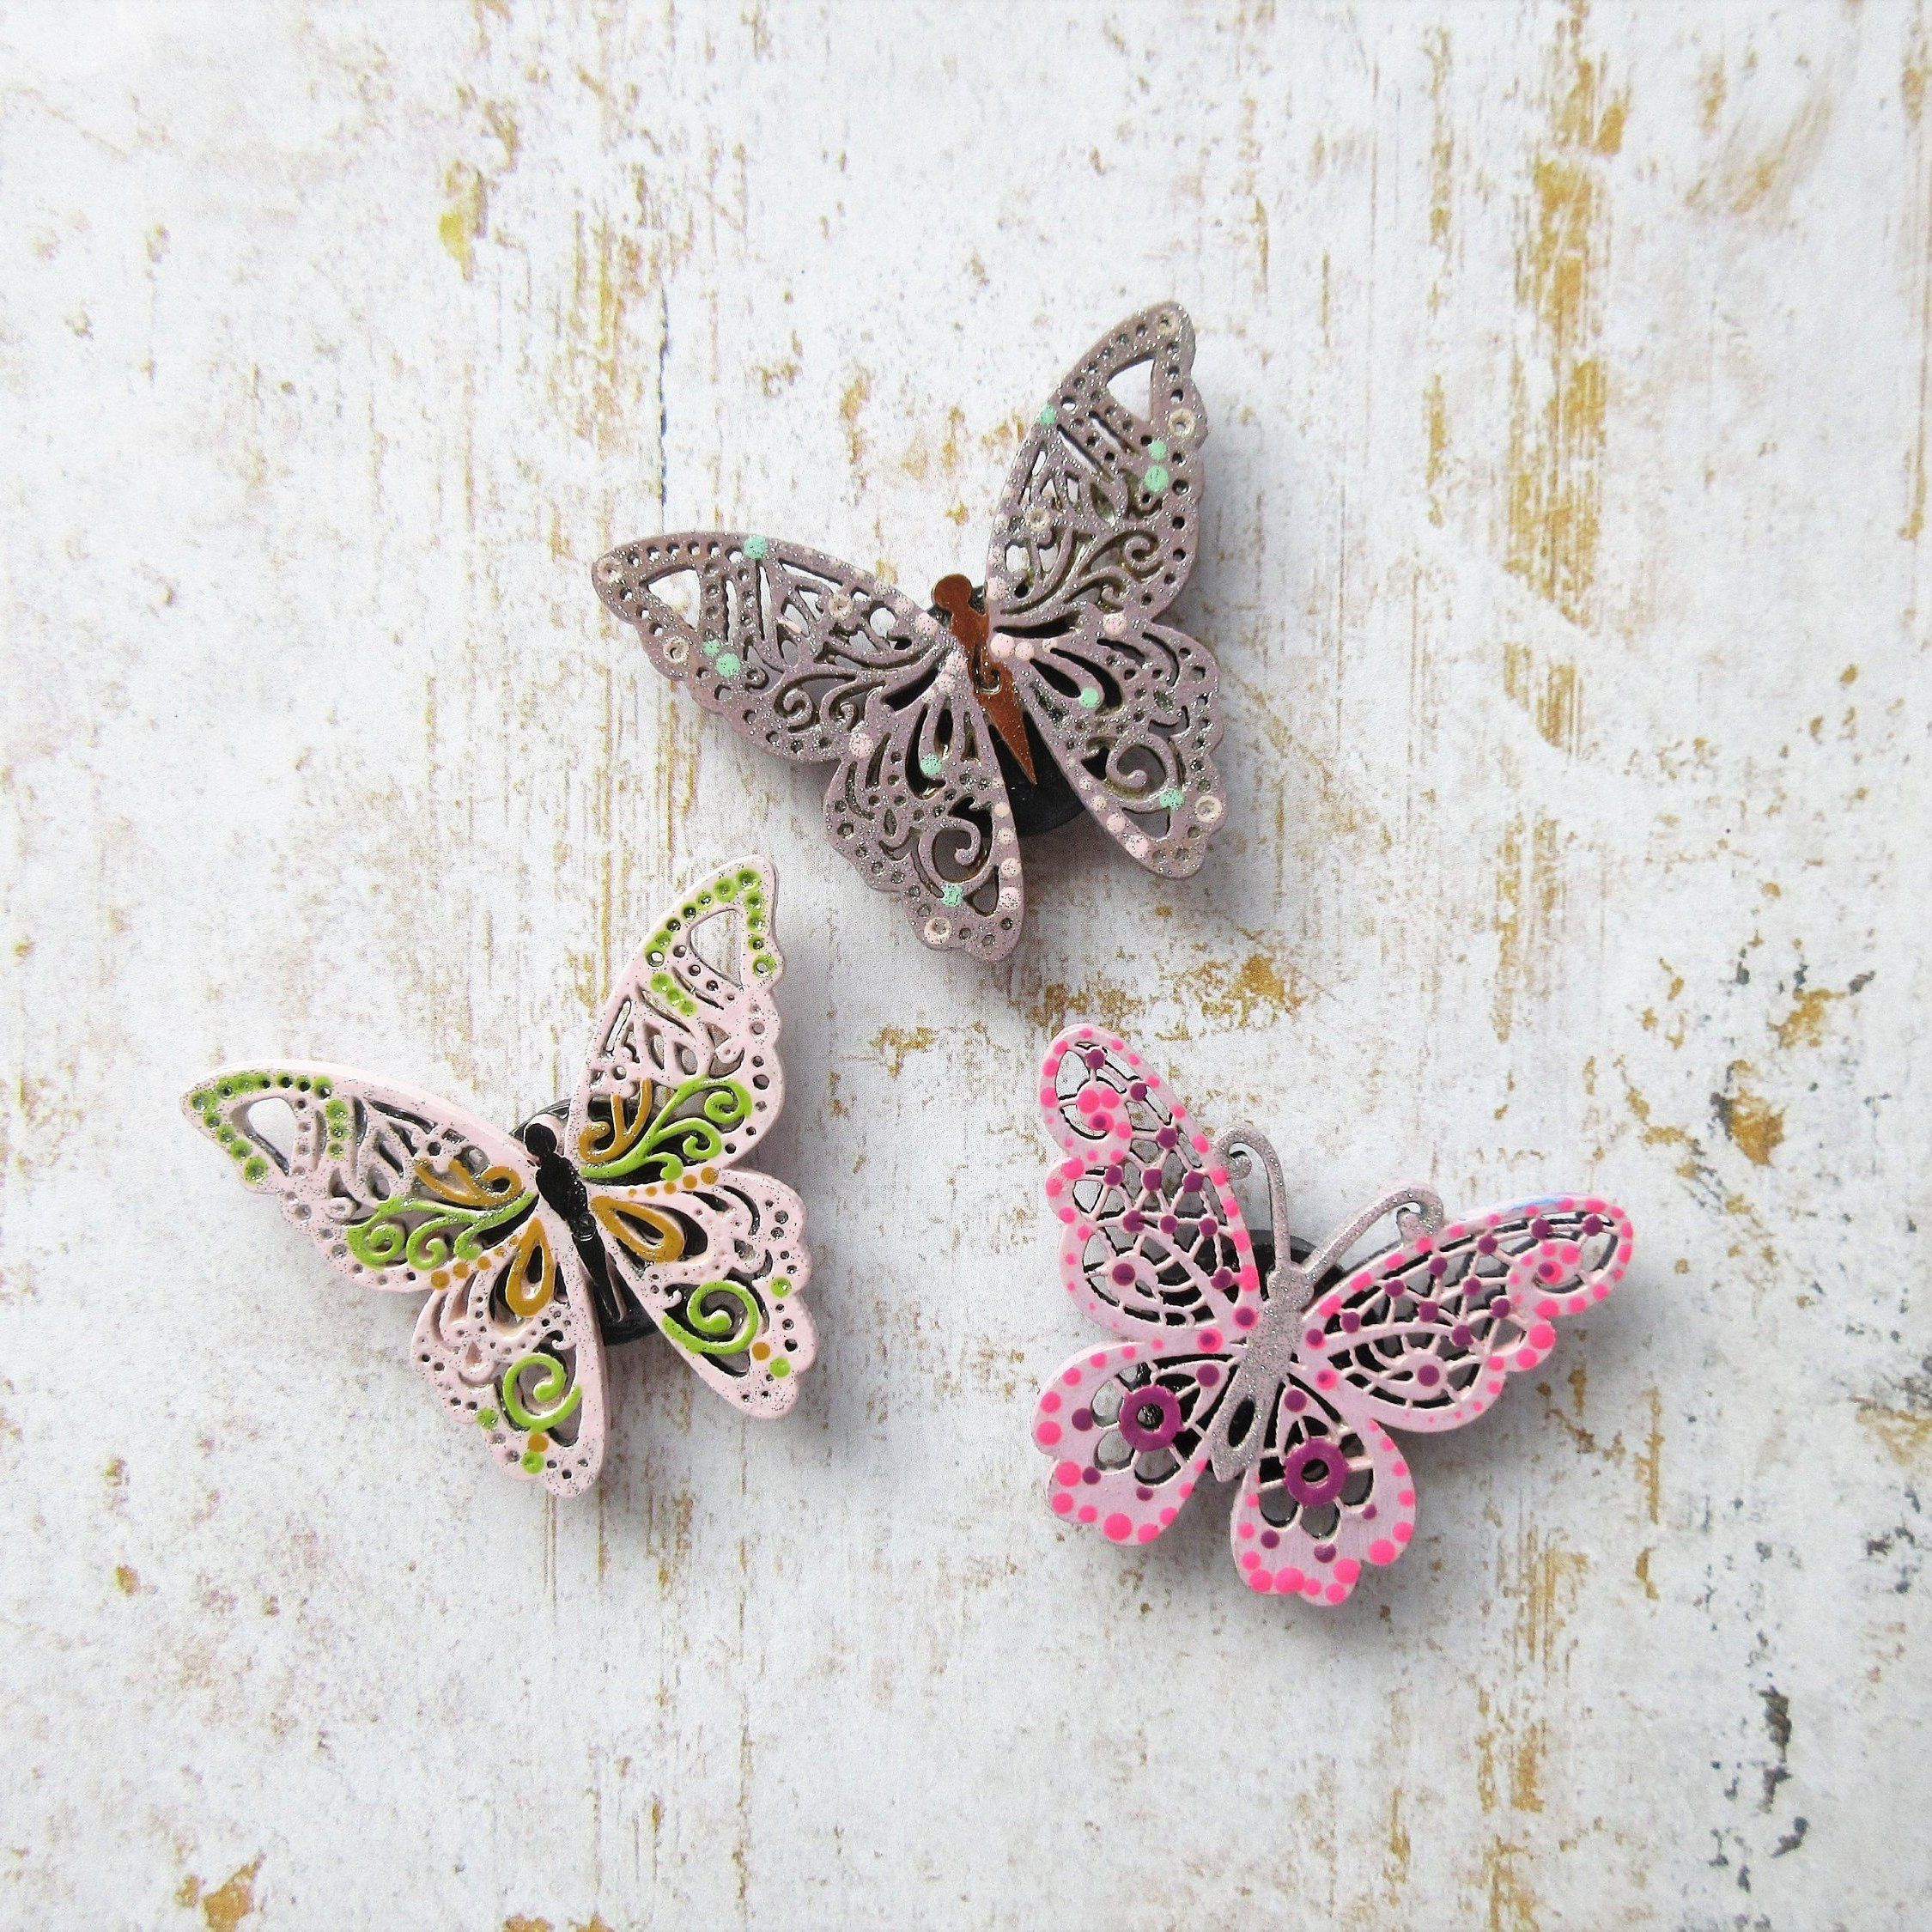 Set Of 3 Handpainted Butterfly Magnets Pink Butterfly Decor Butterfly Art Handpainted Home Decor Kitchen Accessories Office Decor Butterfly Decorations Butterfly Art Pink Butterfly